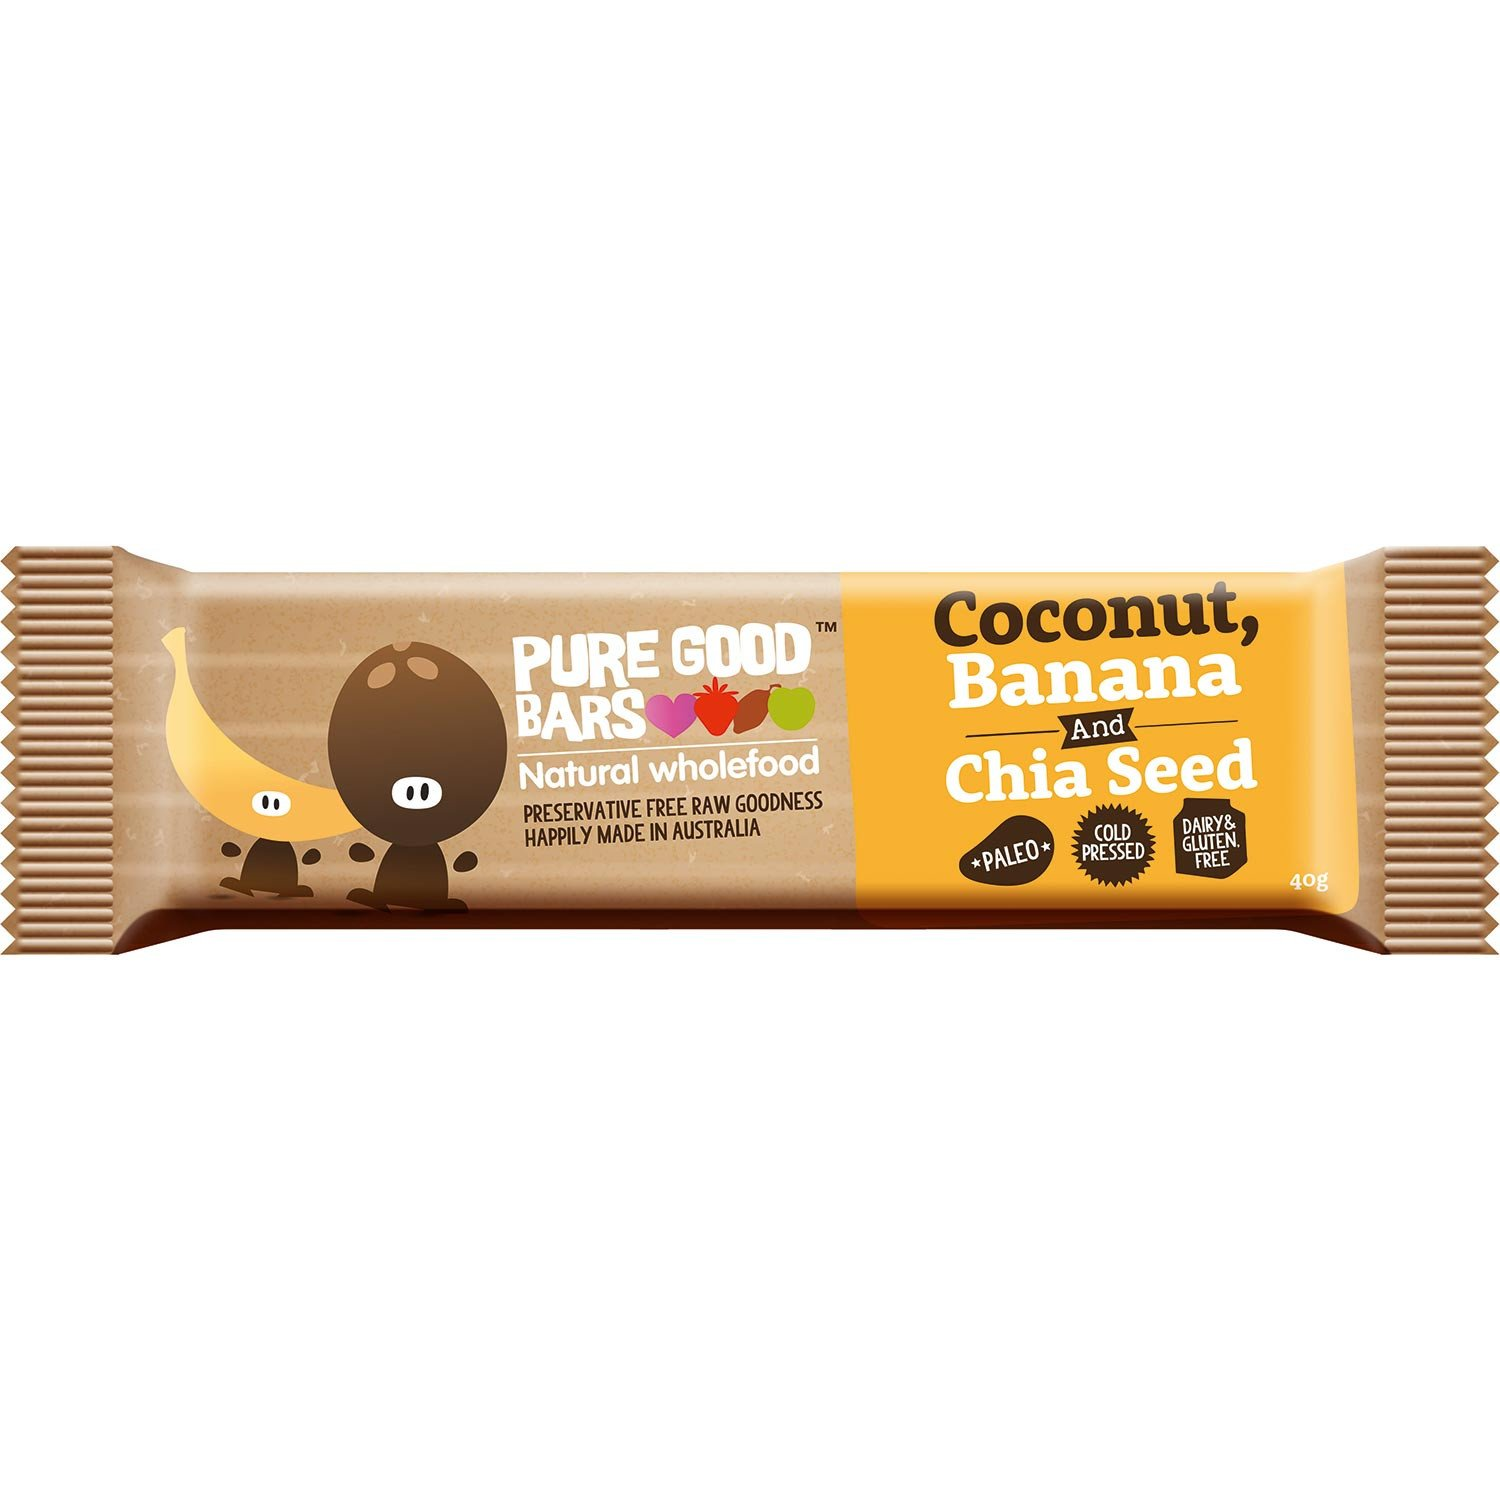 Pure Good Bars -Coconut, Banana and Chia Seed, 40g